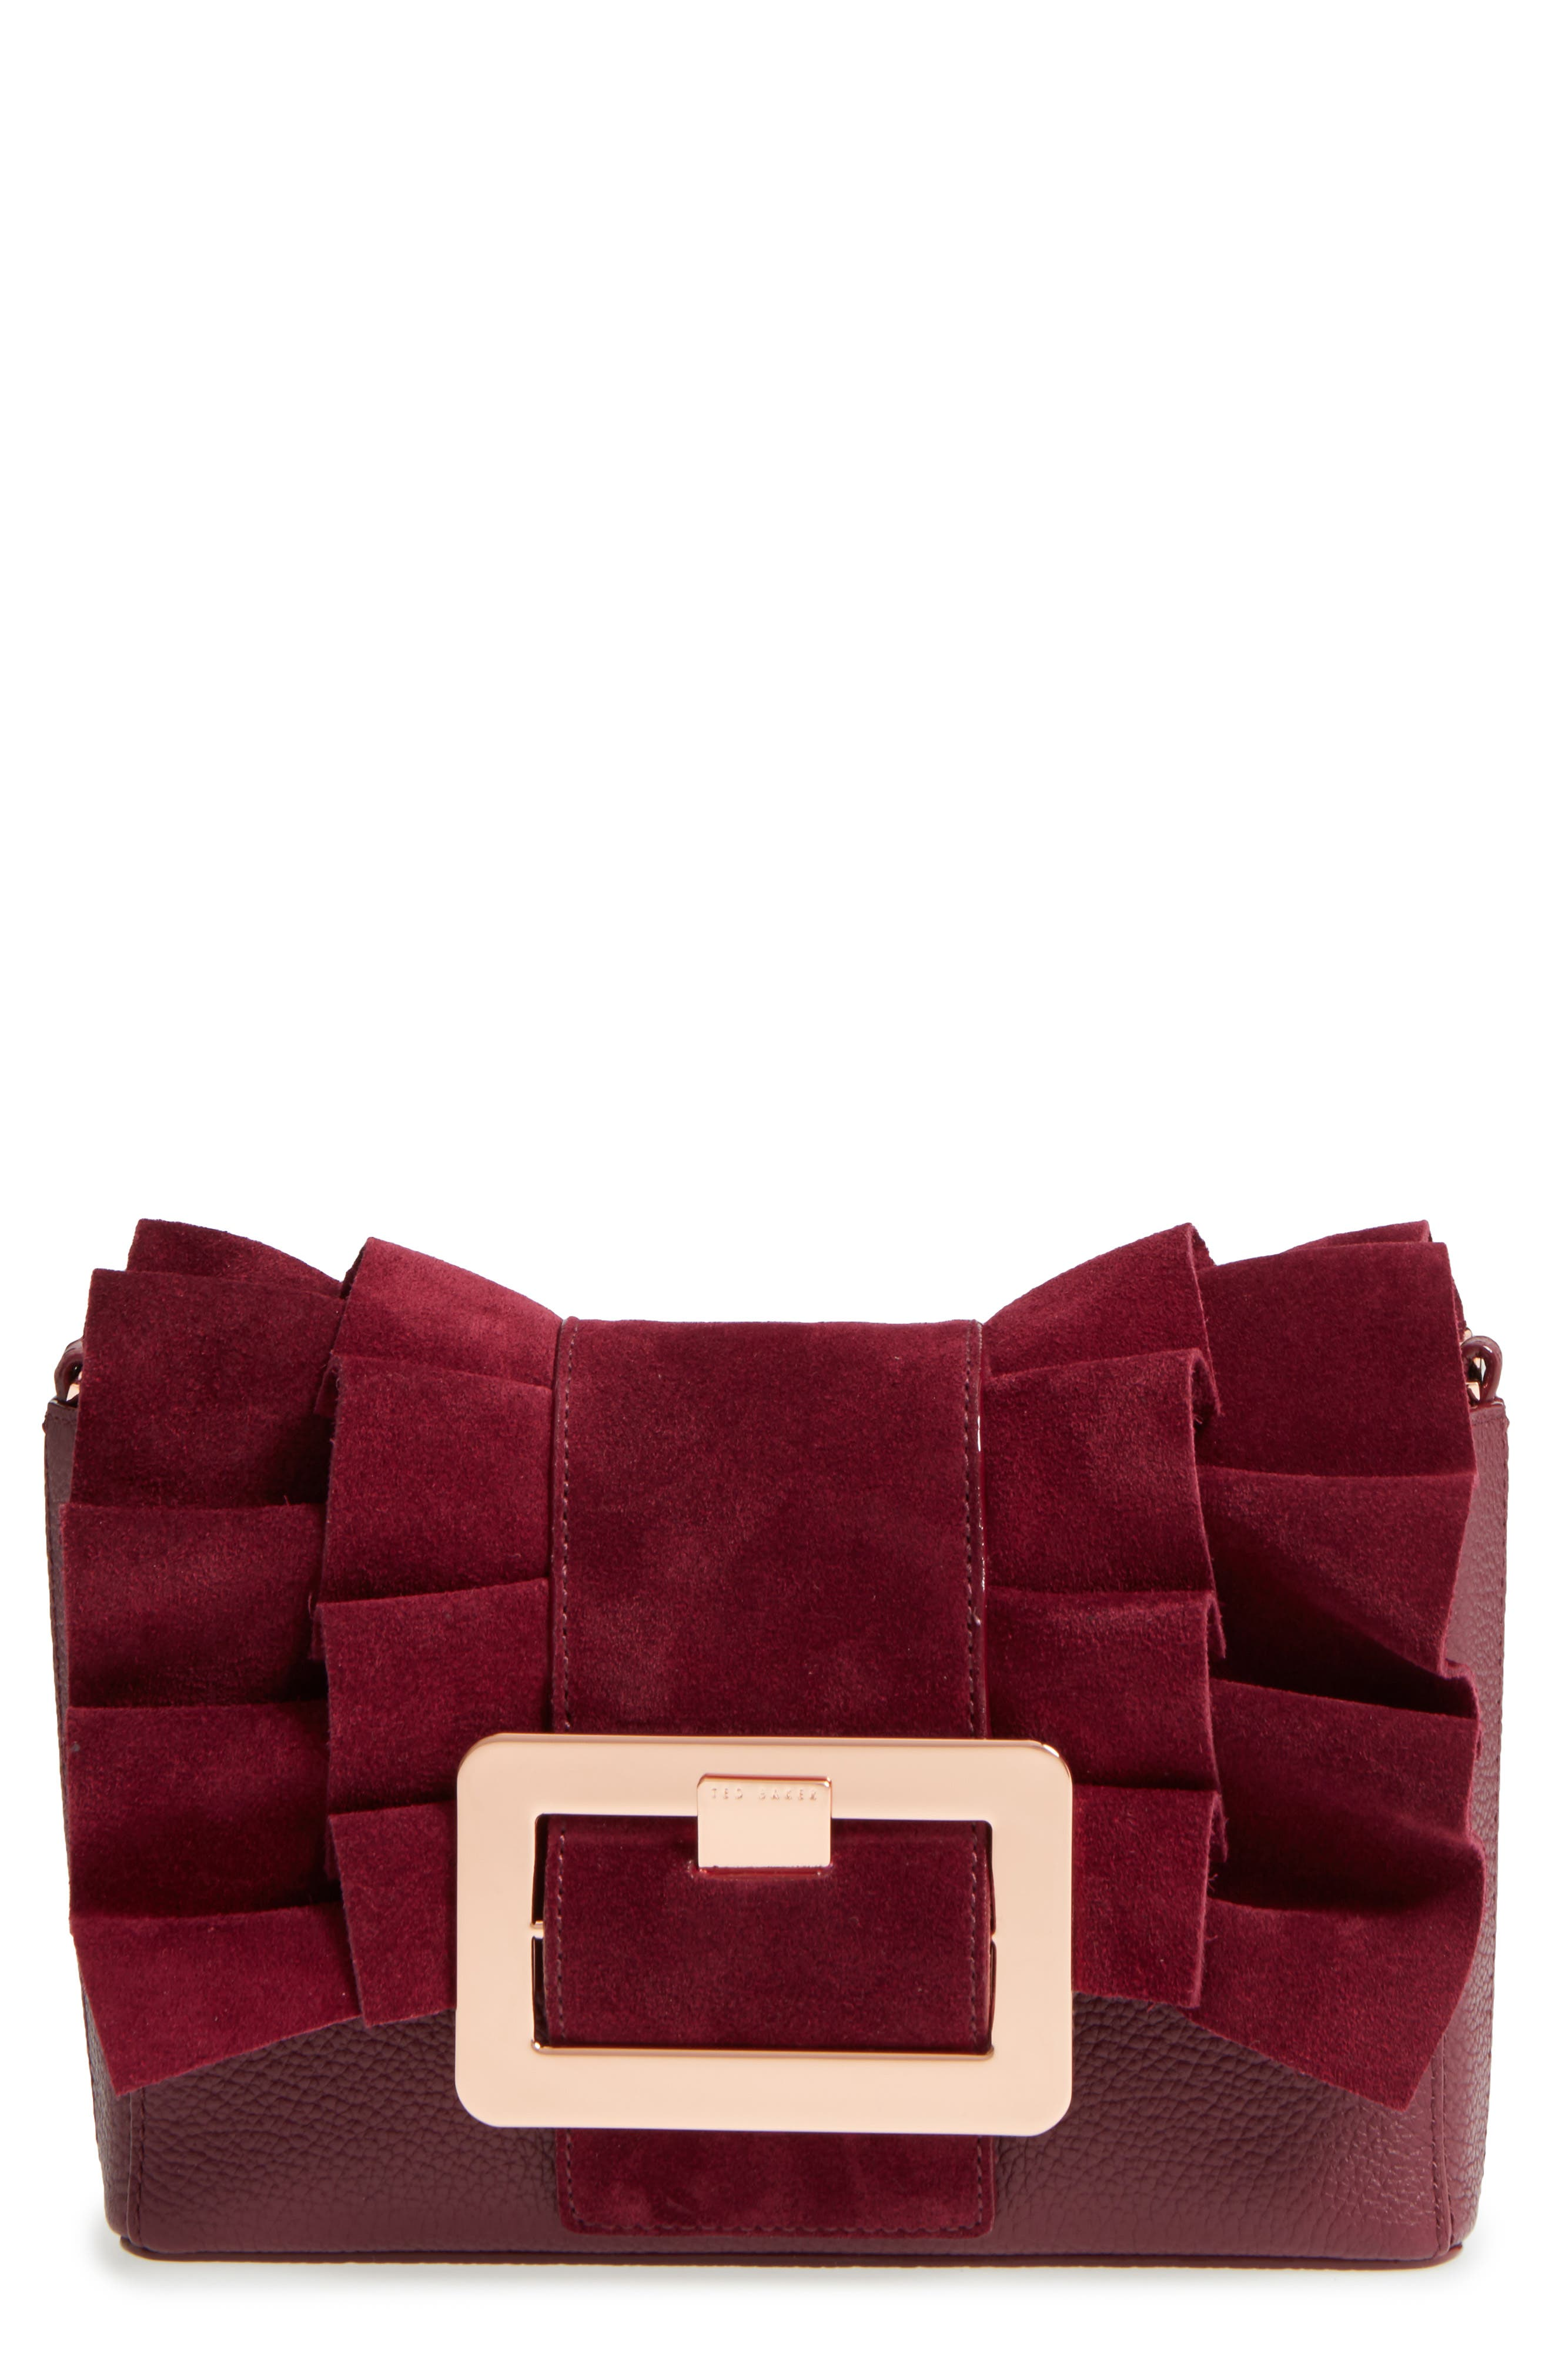 Nerinee Bow Buckle Clutch,                             Main thumbnail 2, color,